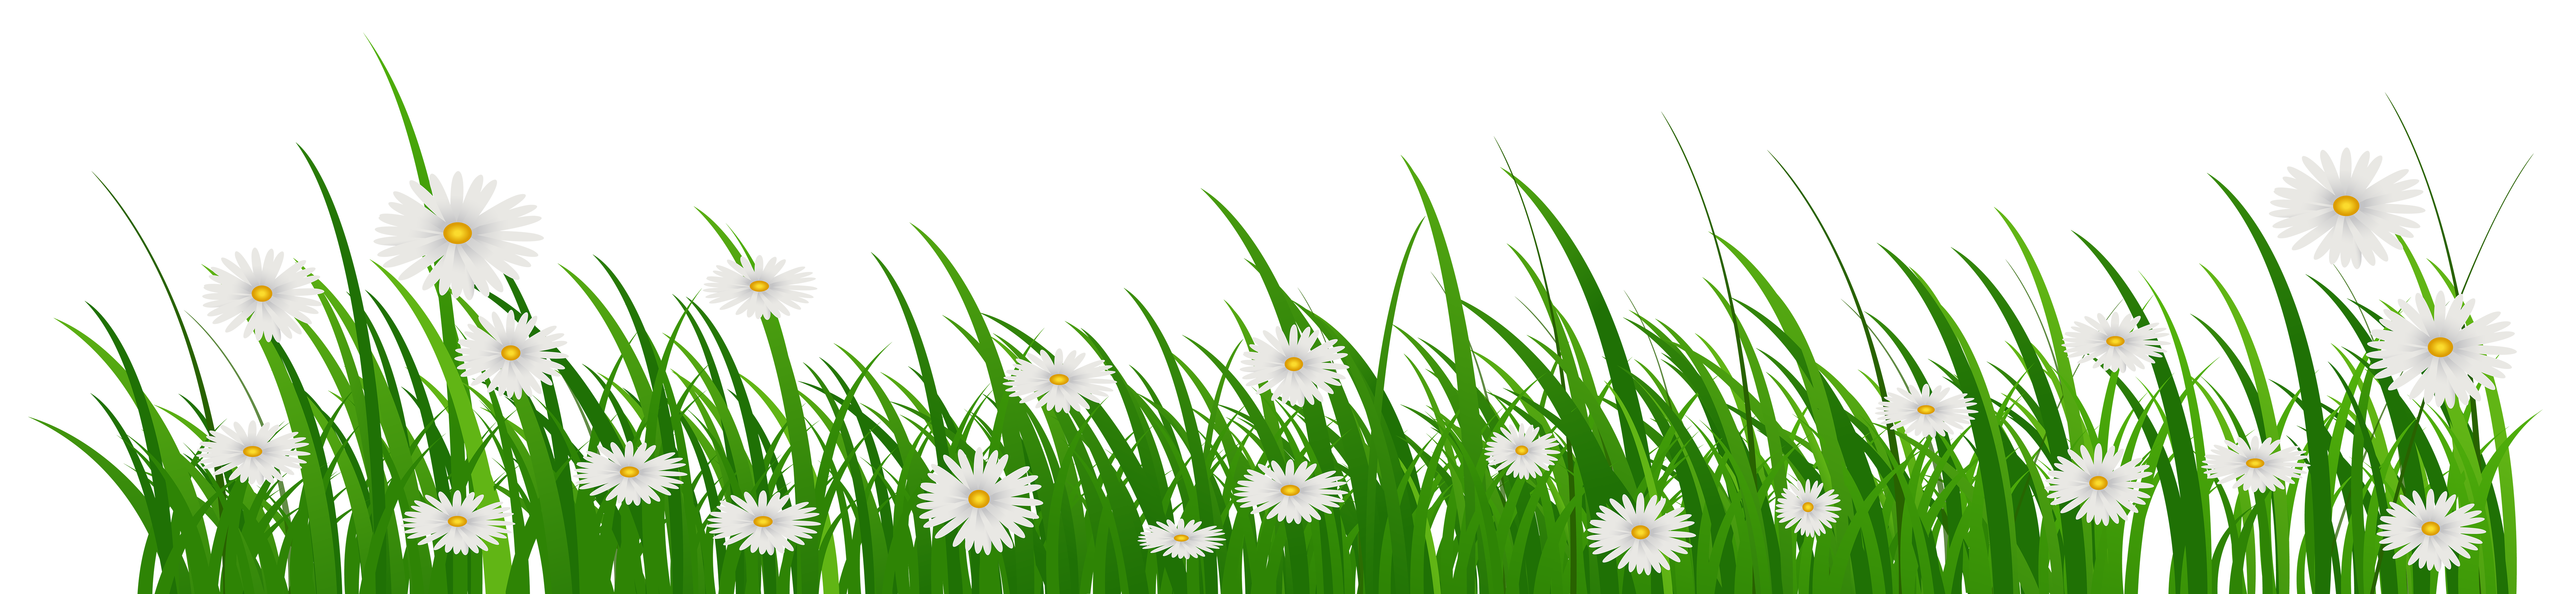 Grass flowers png. With clip art image